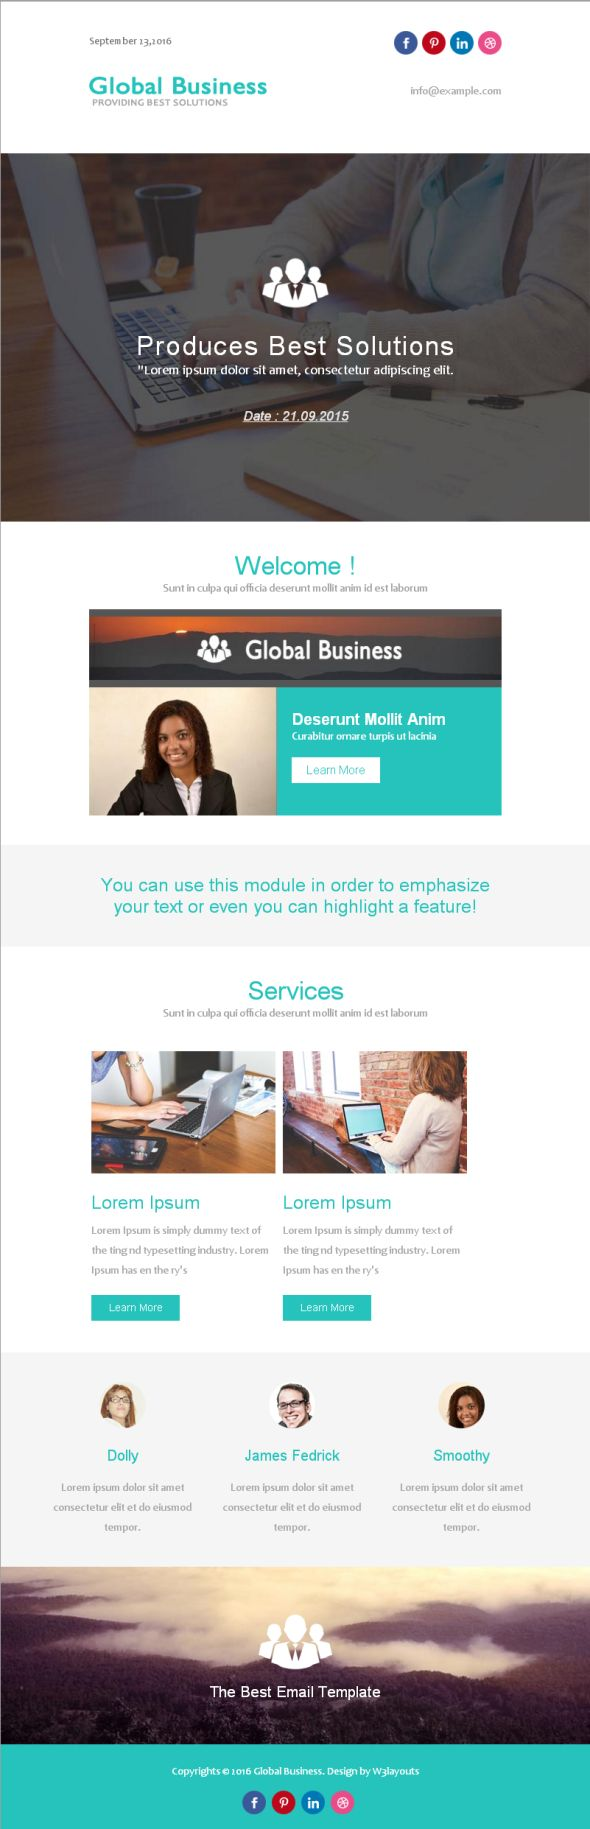 global-business-newsletter-template